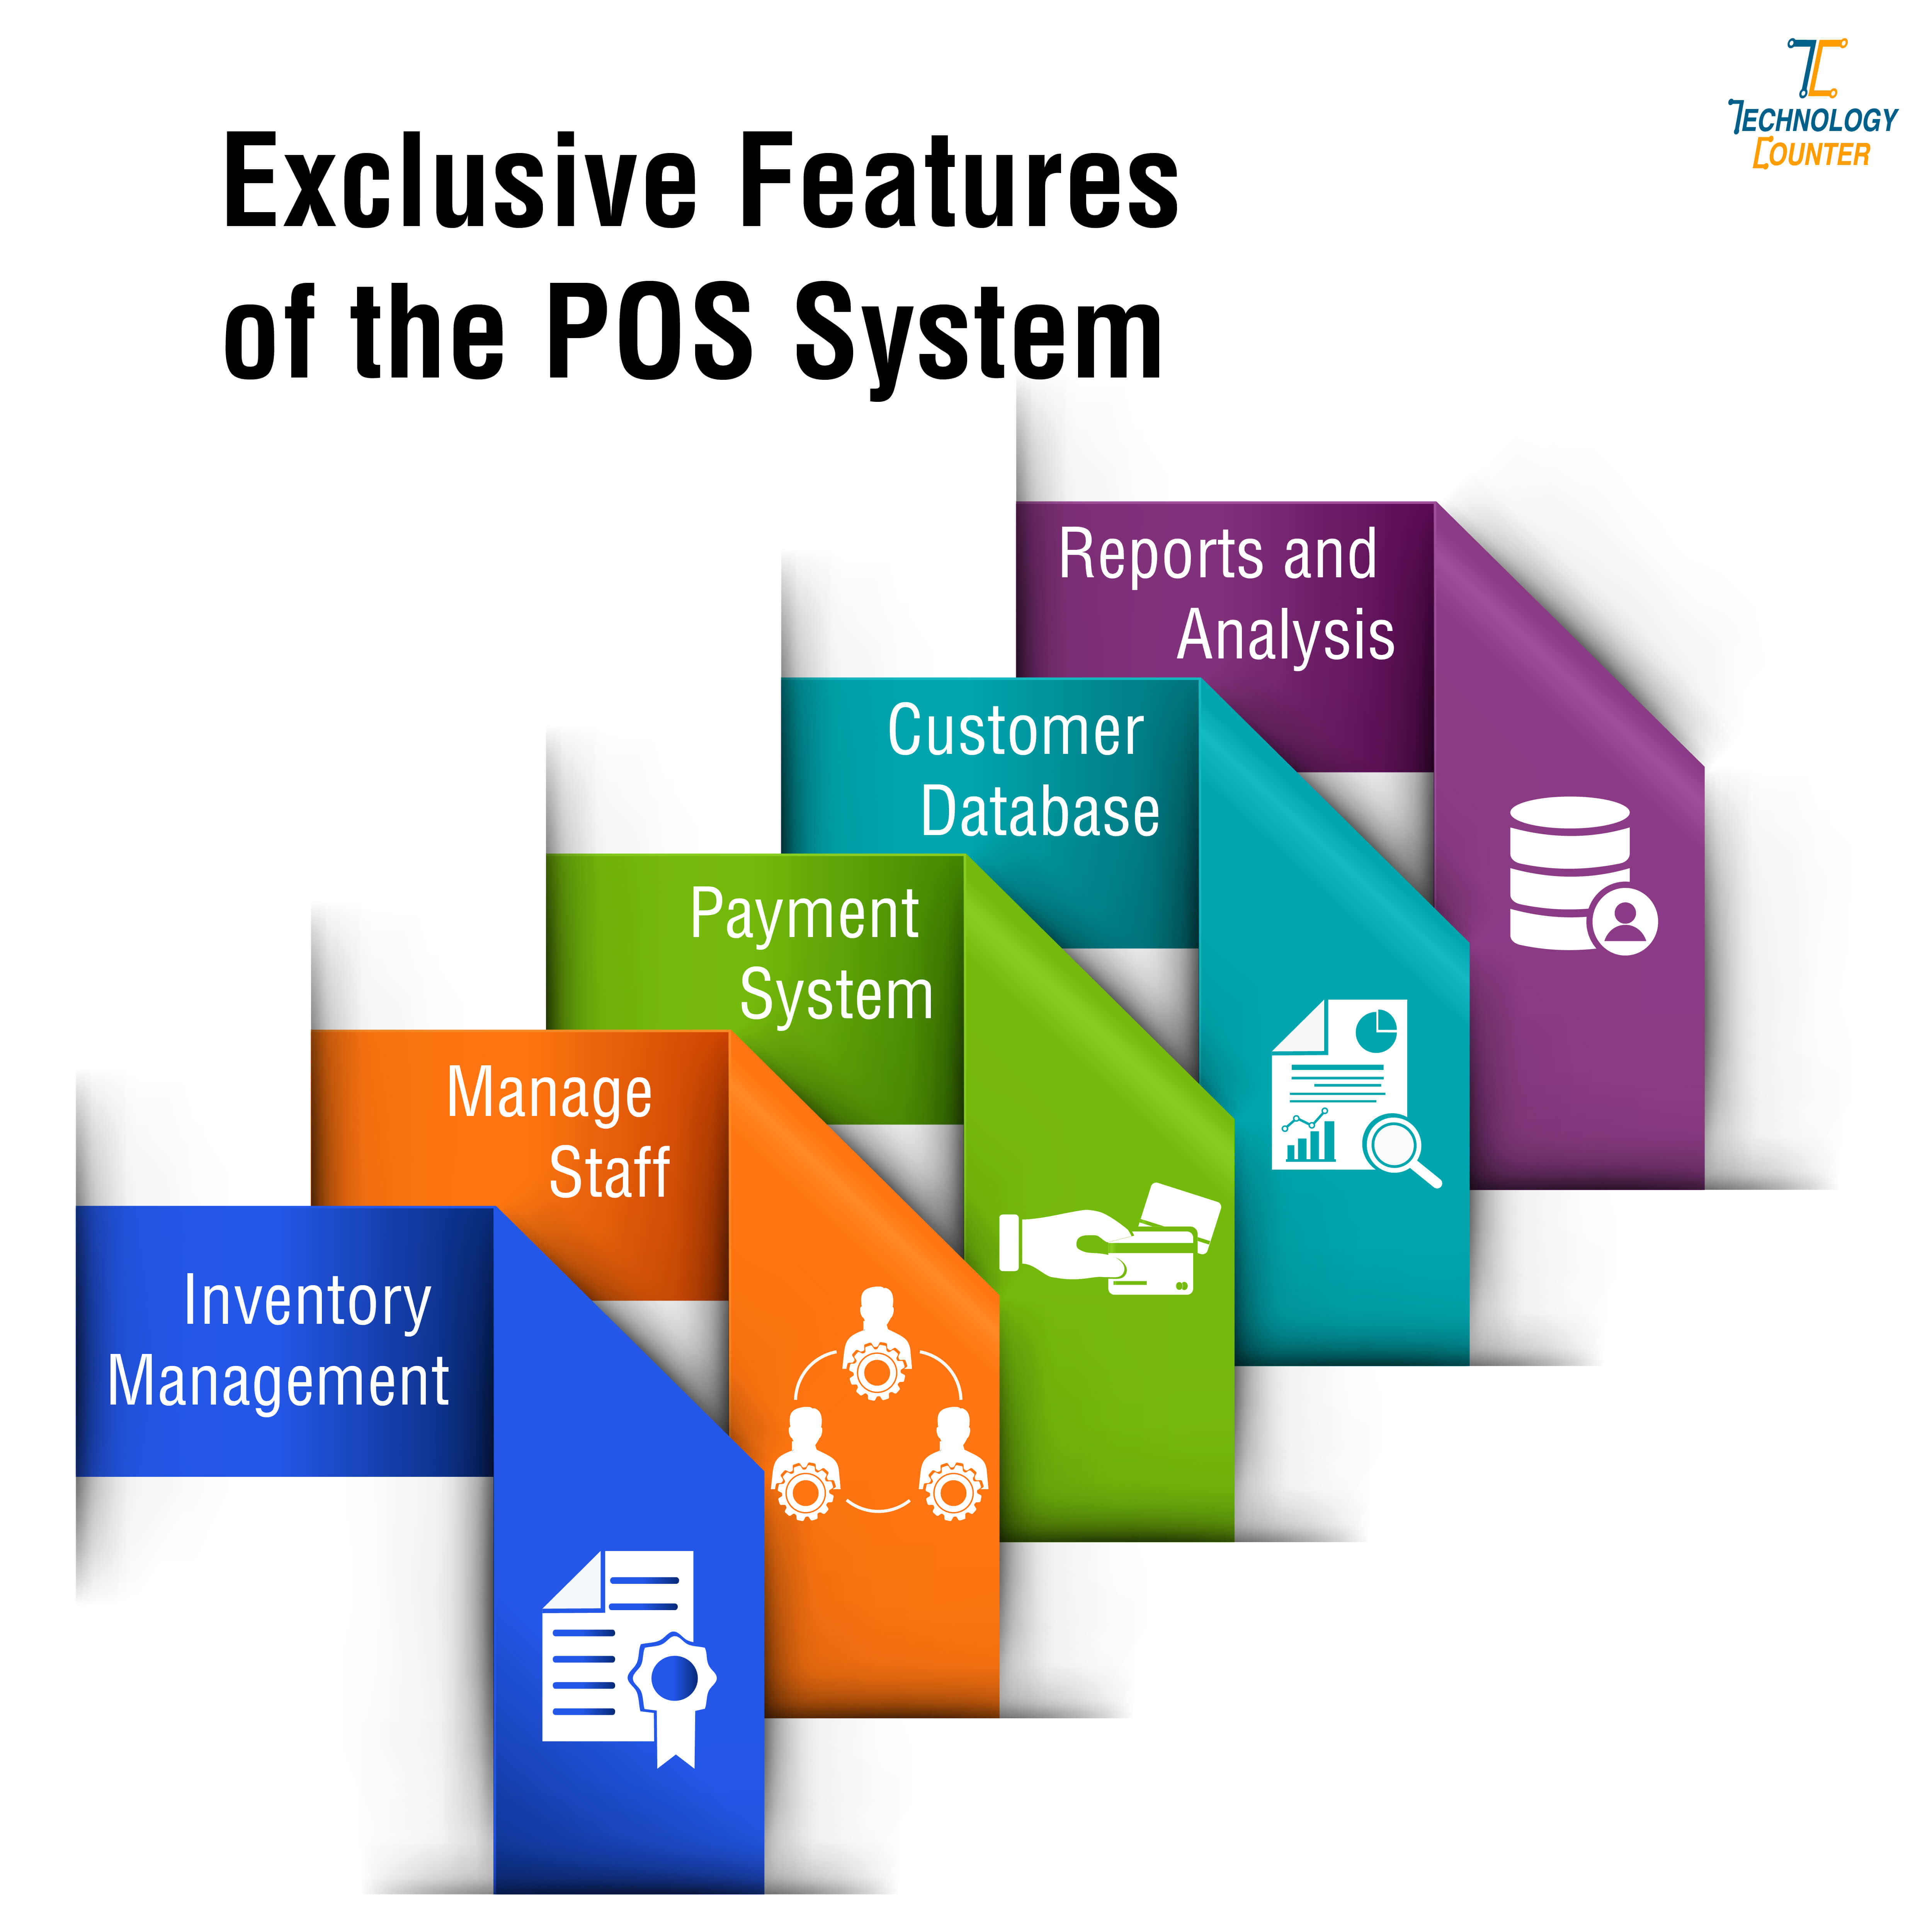 Features of the POS System